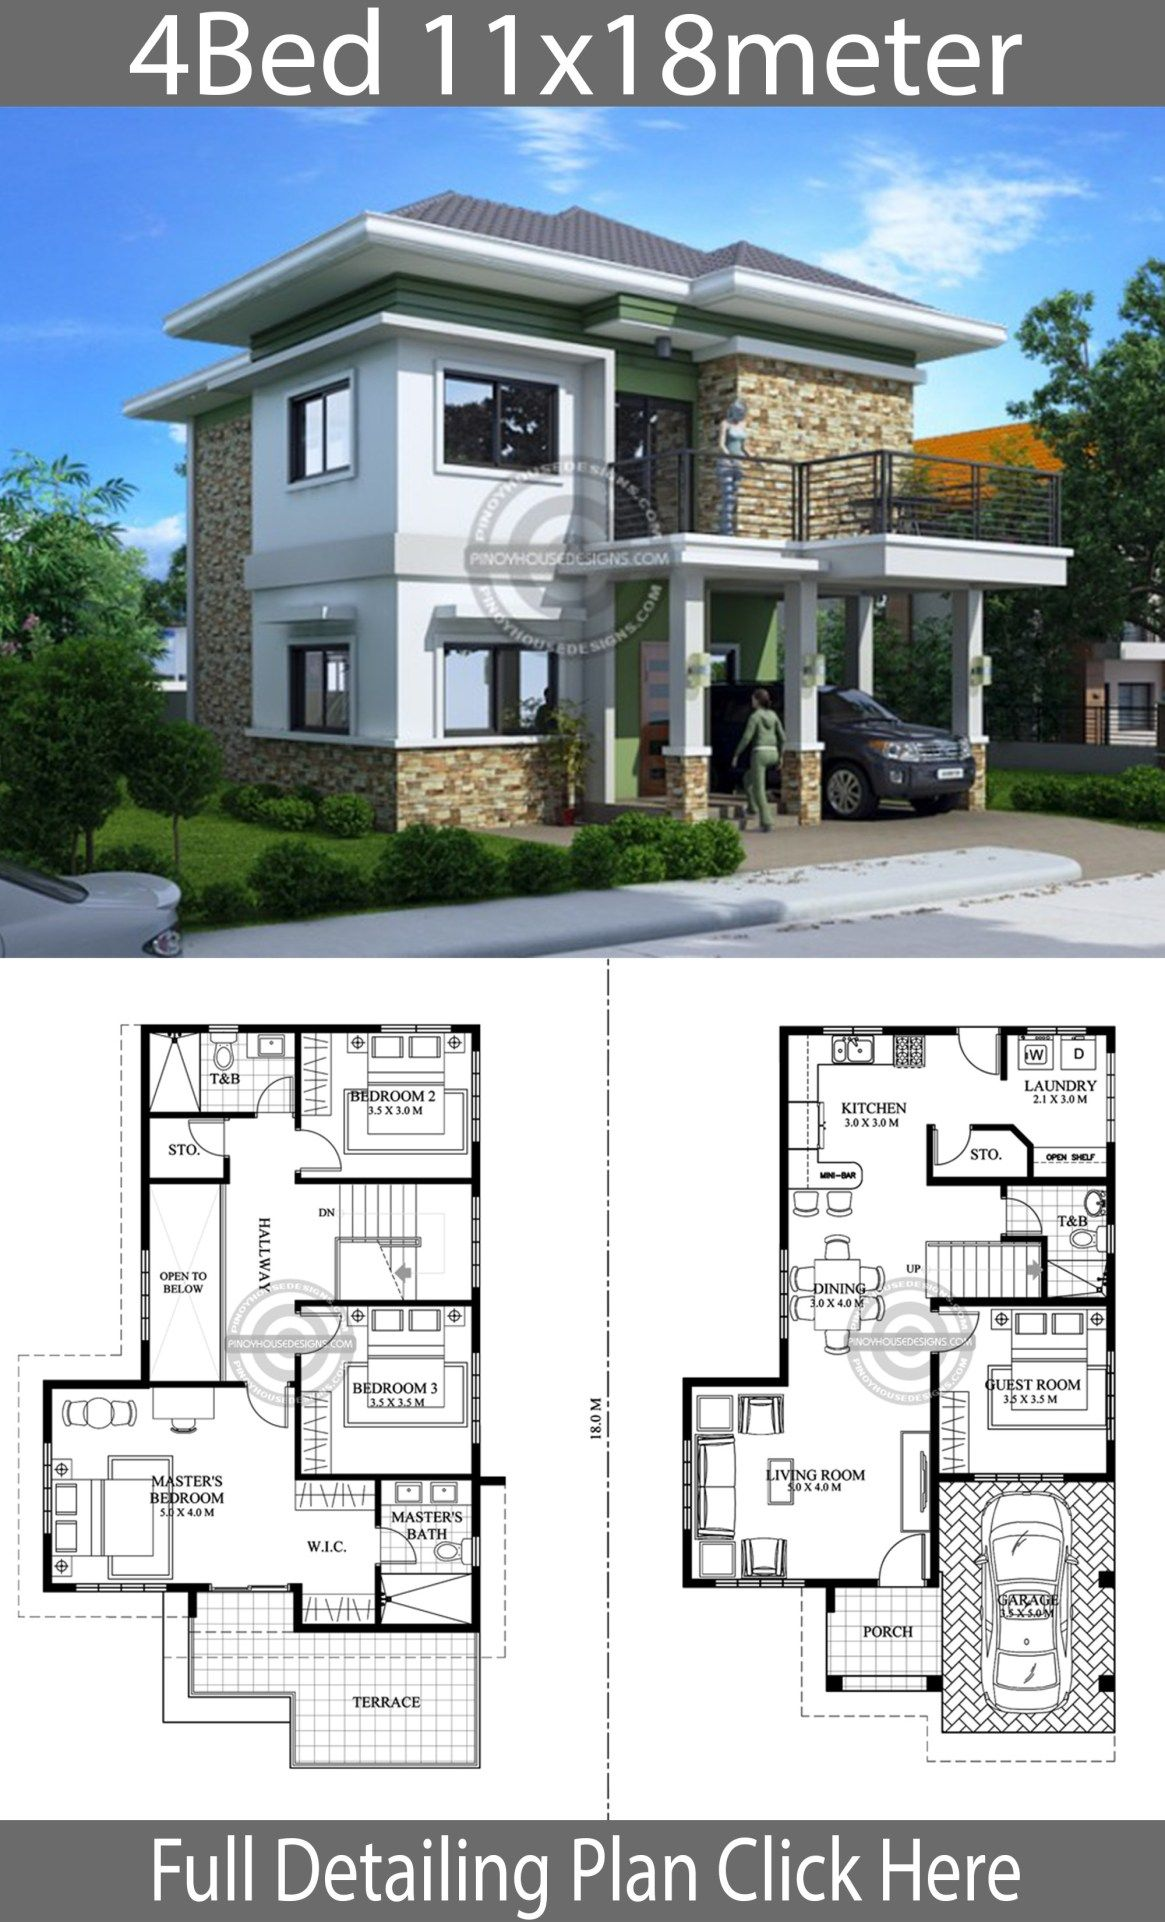 Home Design Plan 111x18m With 4 Bedrooms Home Design With Plansearch Architectural House Plans Architect Design House Model House Plan